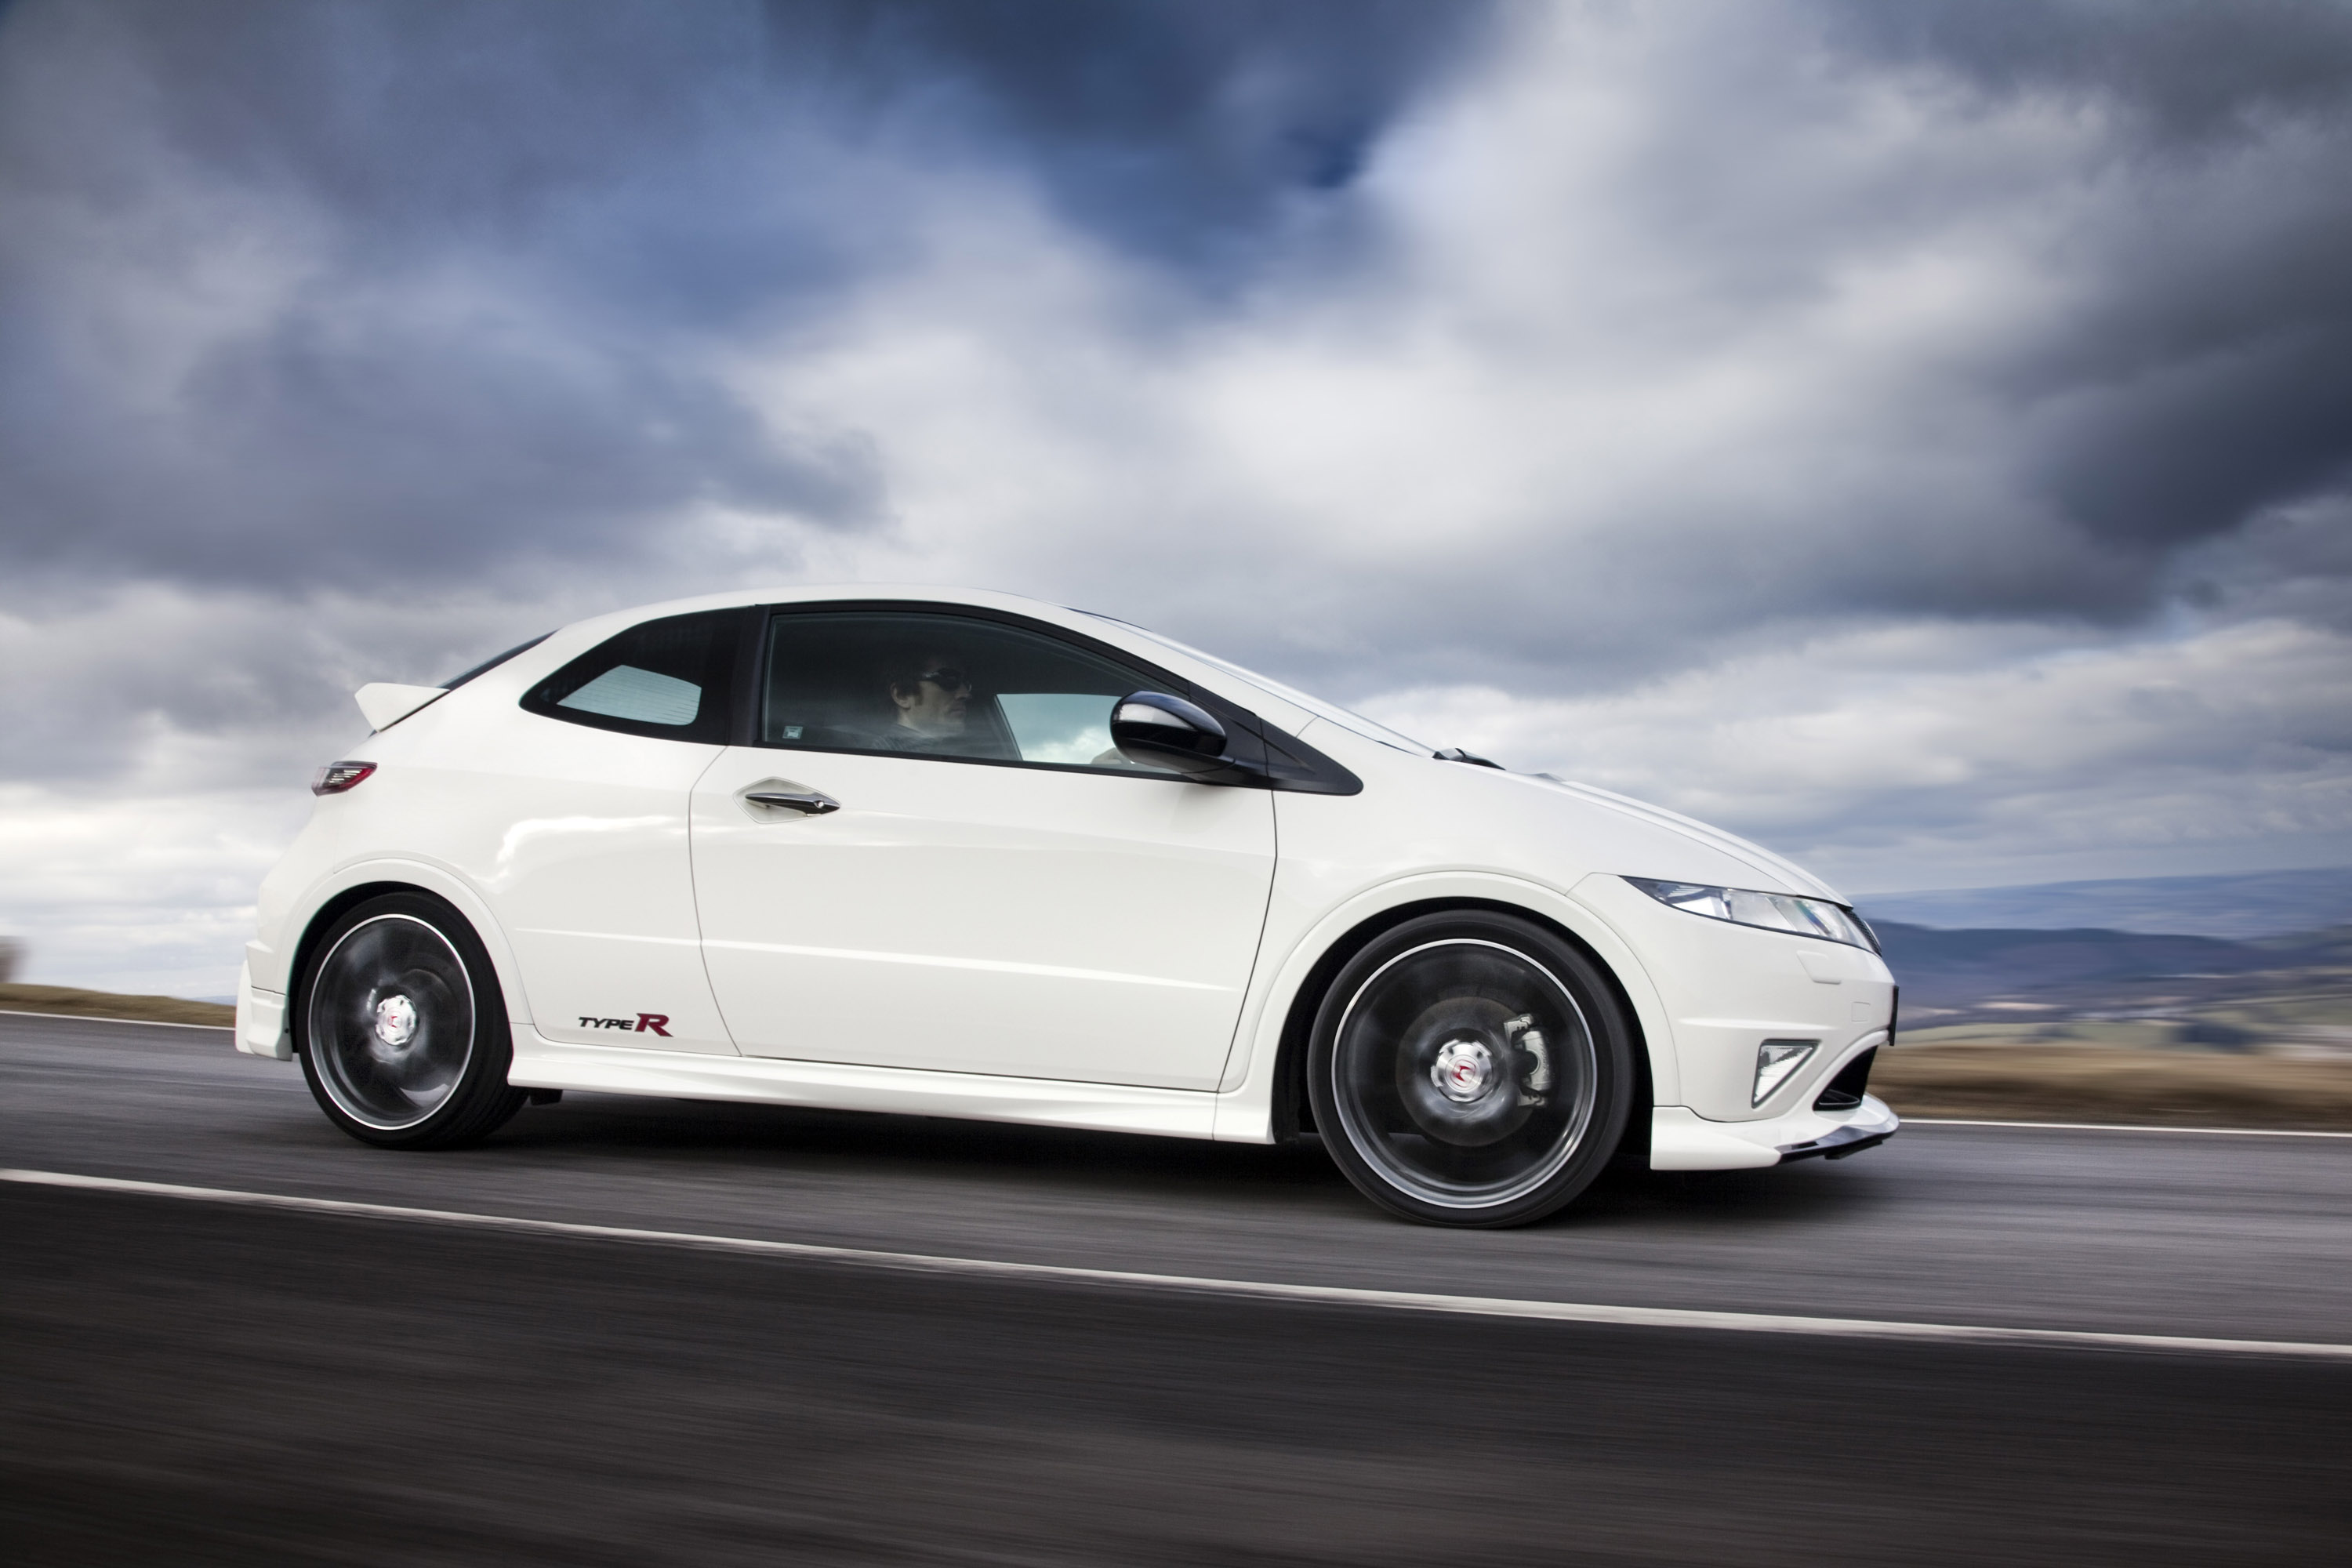 Honda Civic Type R Mugen 200 at Silverstone on 22 August